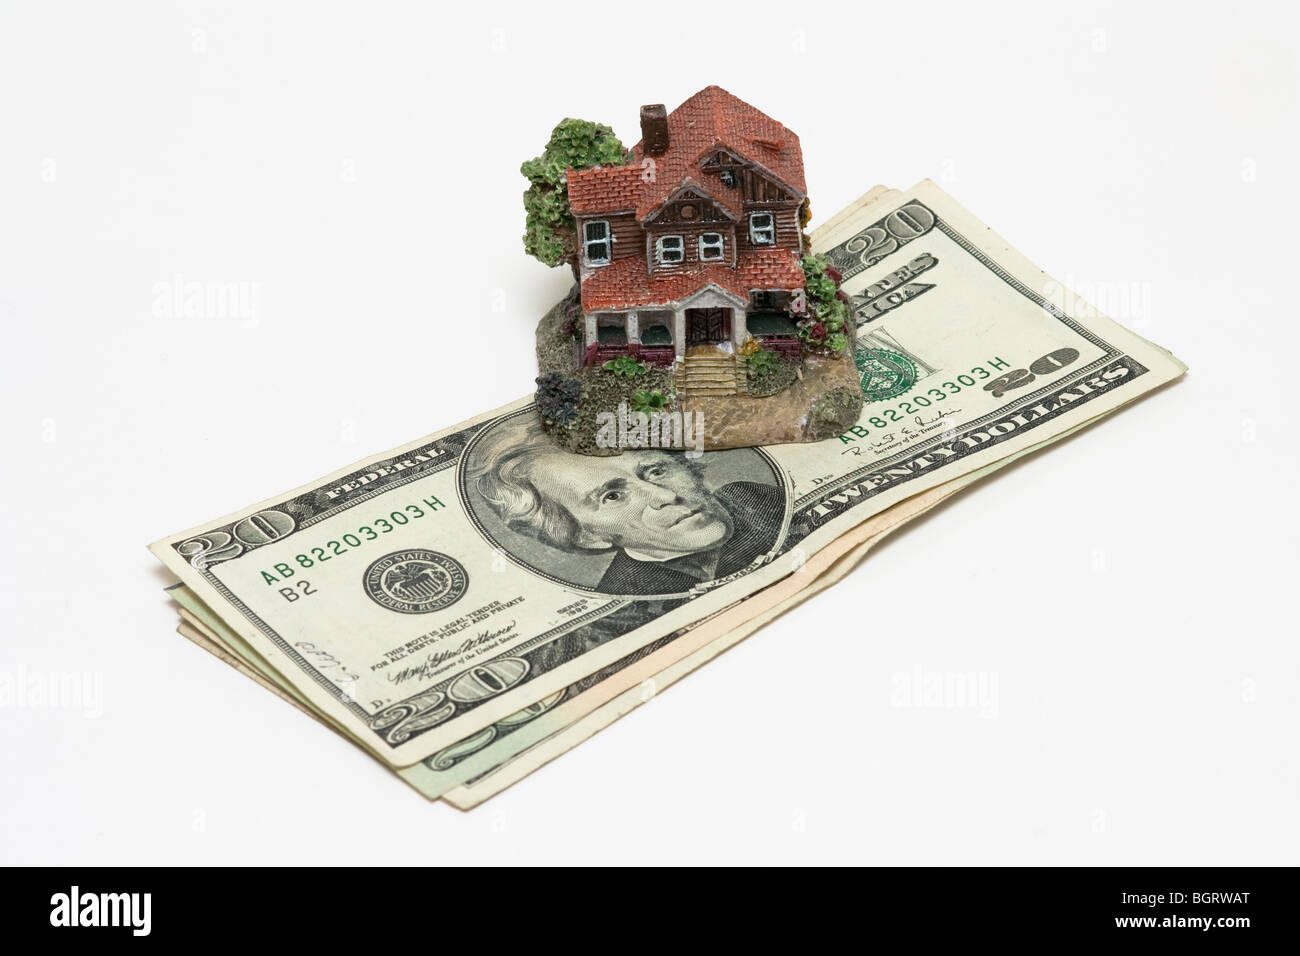 US,housing,debt,mortgage,home,house,market - Stock Image